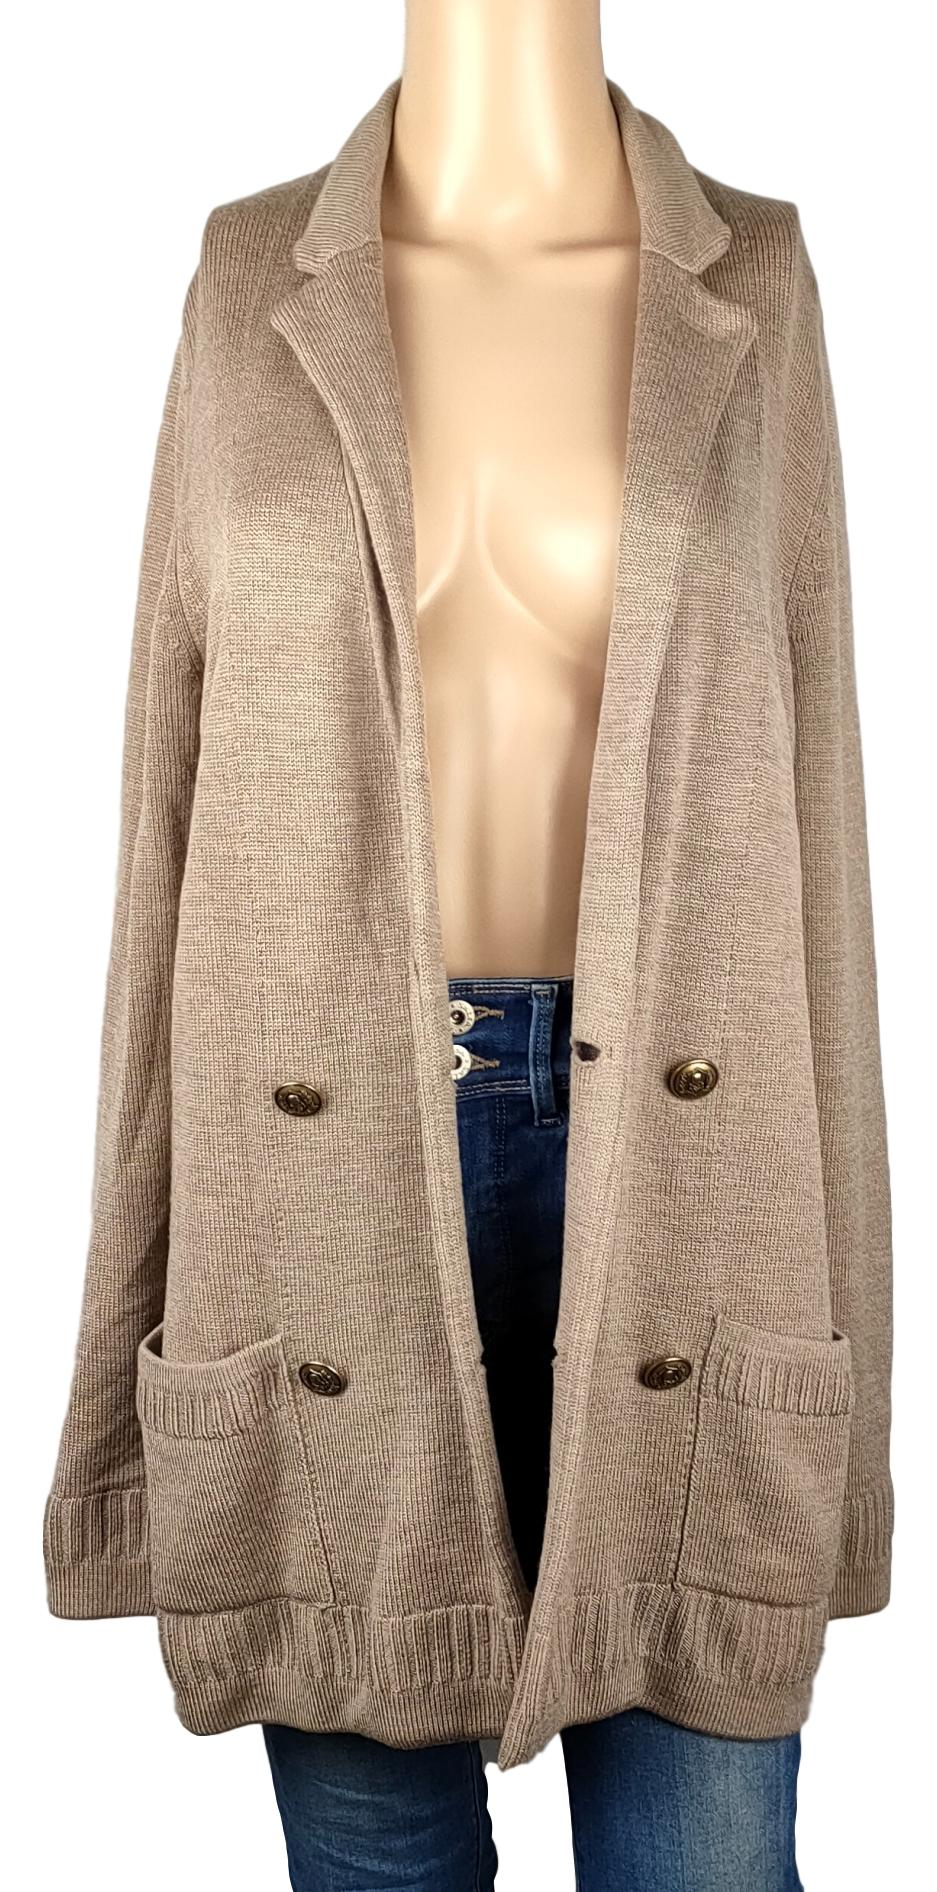 Gilet The Kooples - Taille M